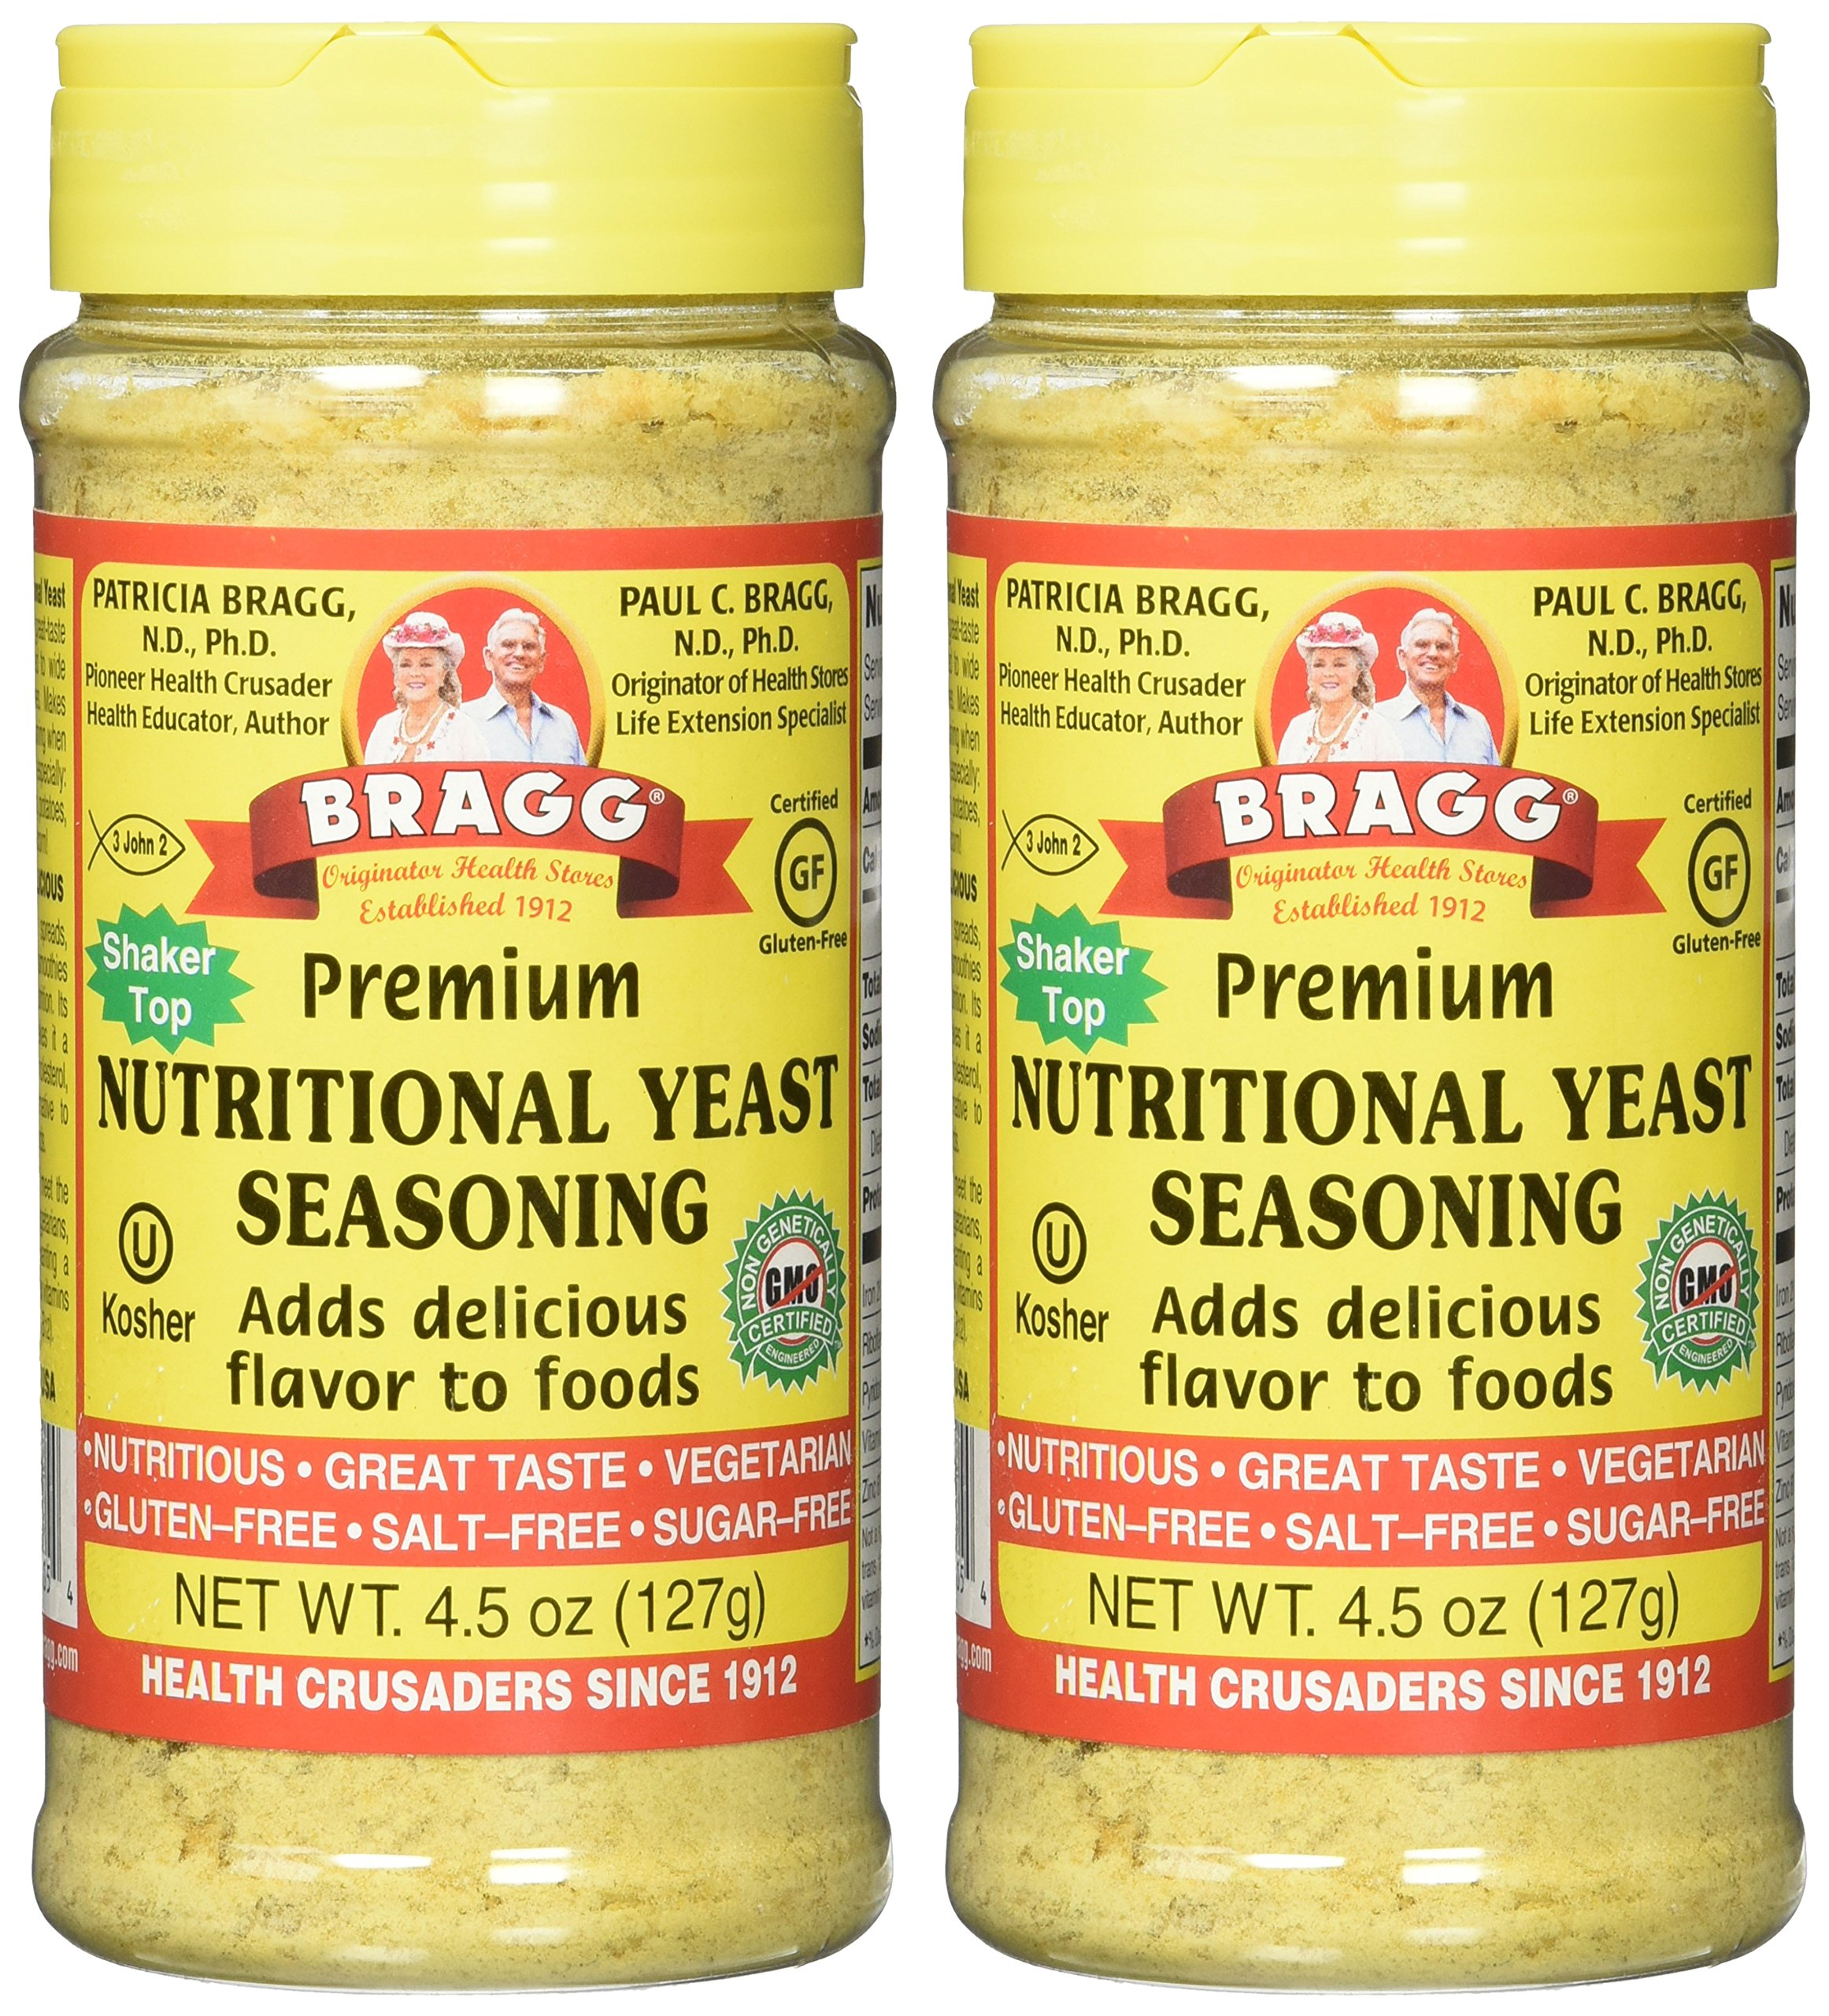 Bragg's Nutritional Yeast, 4.5 Oz, 2 Pack by Bragg (Image #2)